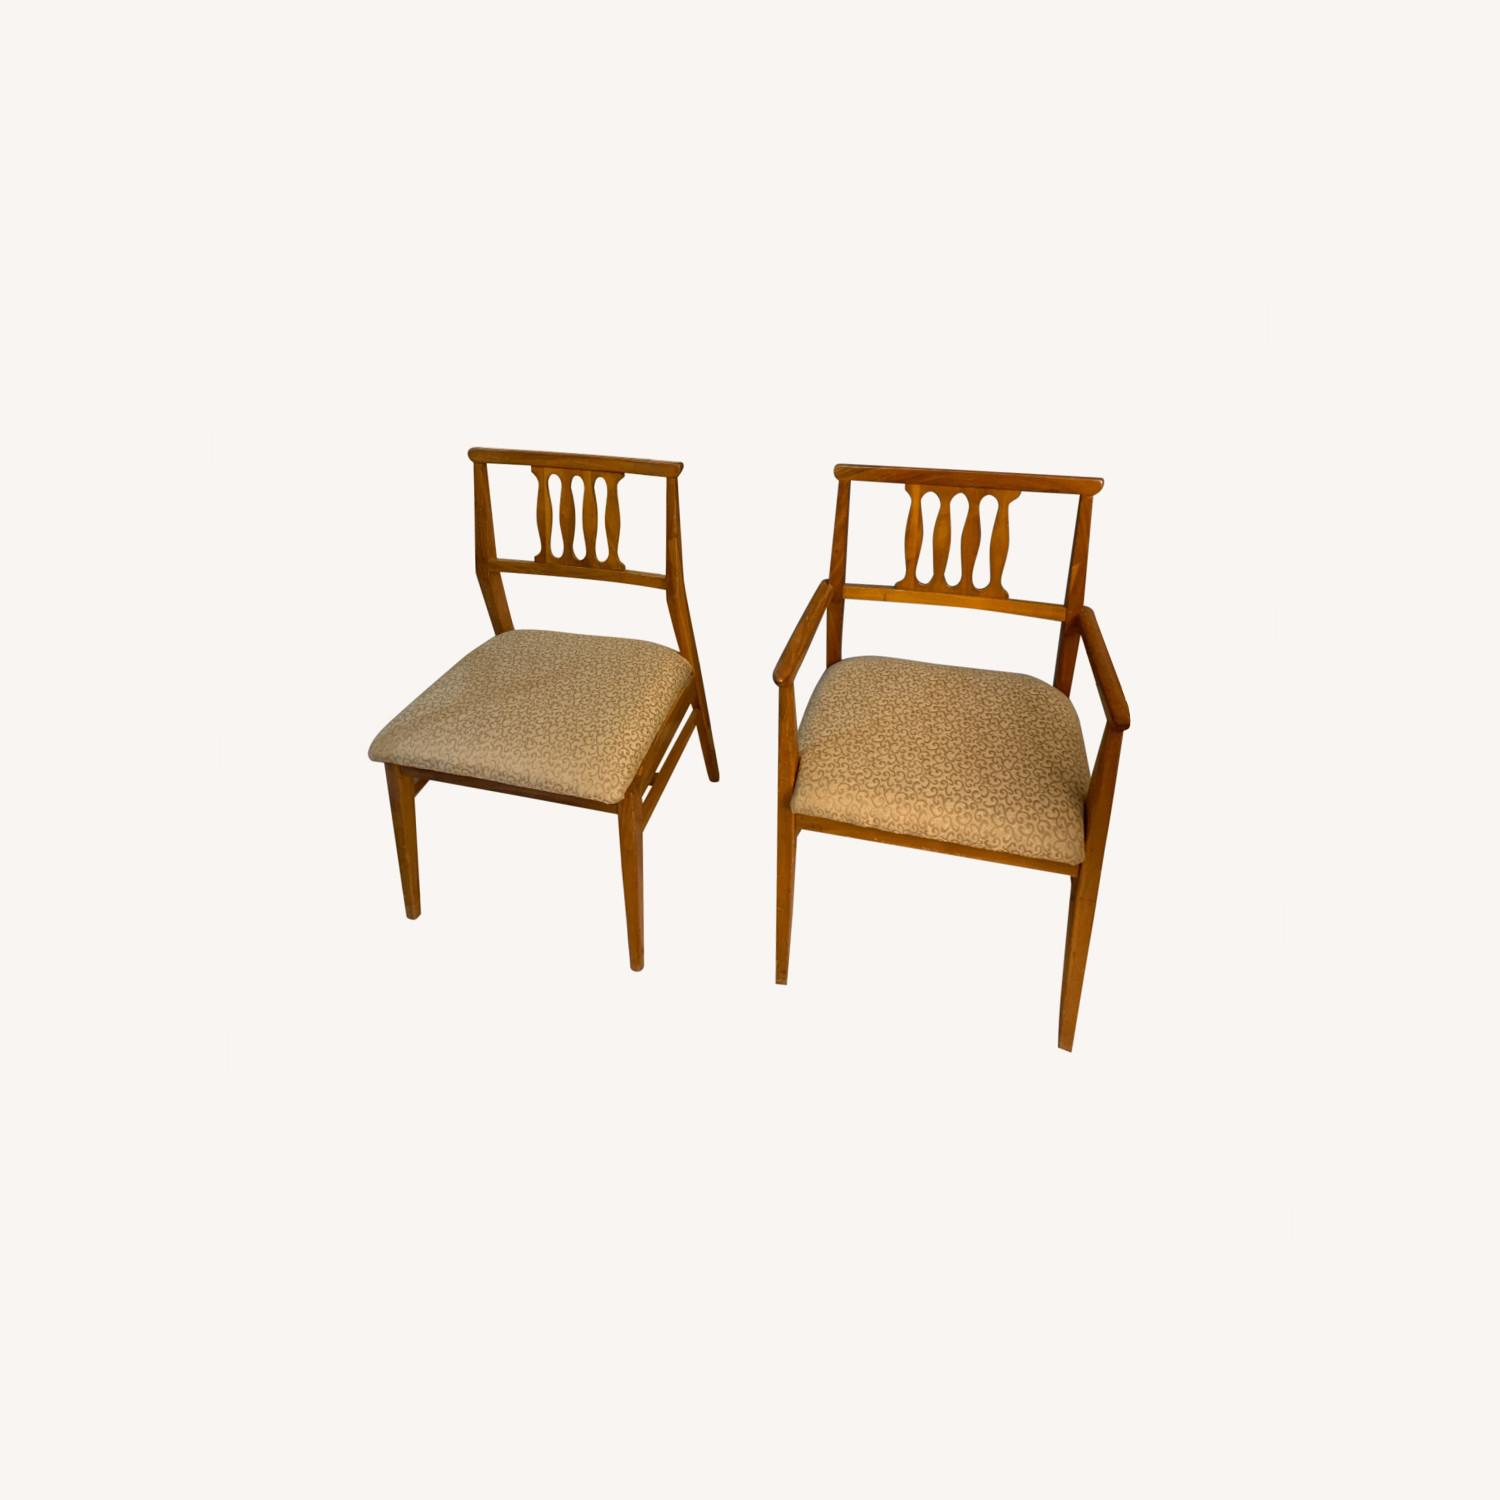 Hickory Furniture Company Dining Chair Set - image-0